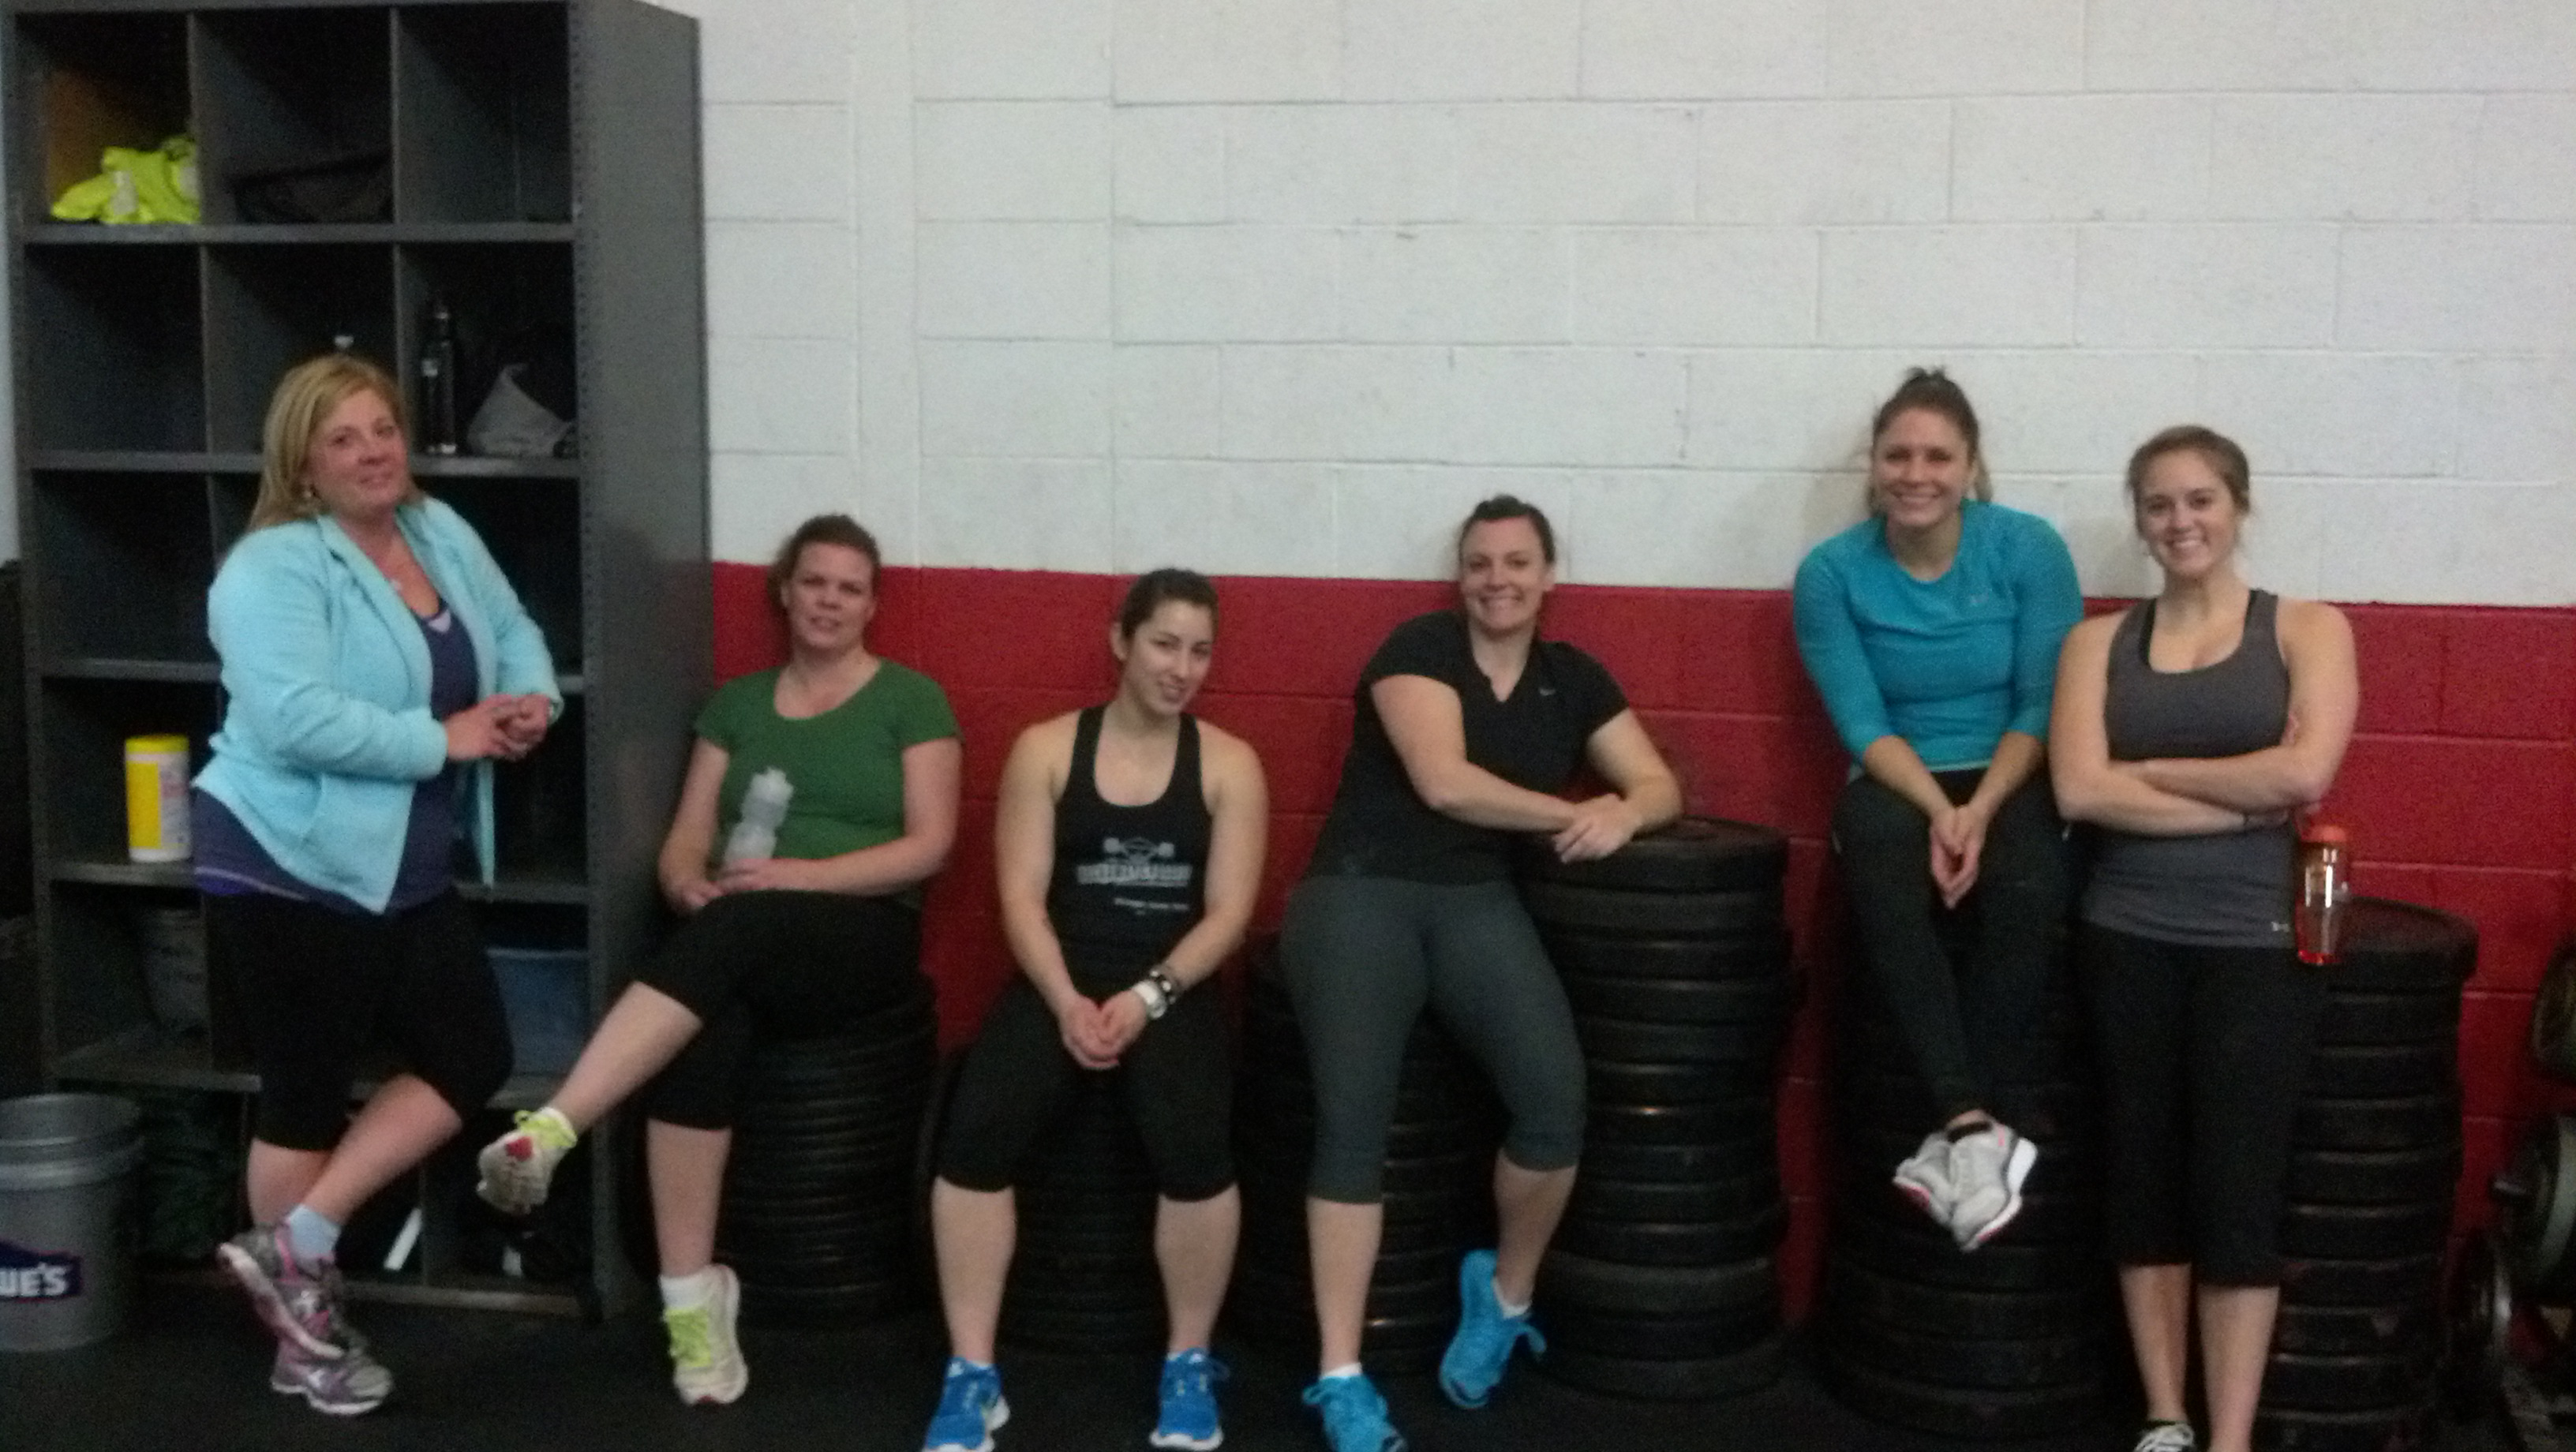 Sunday, January 13 WOD